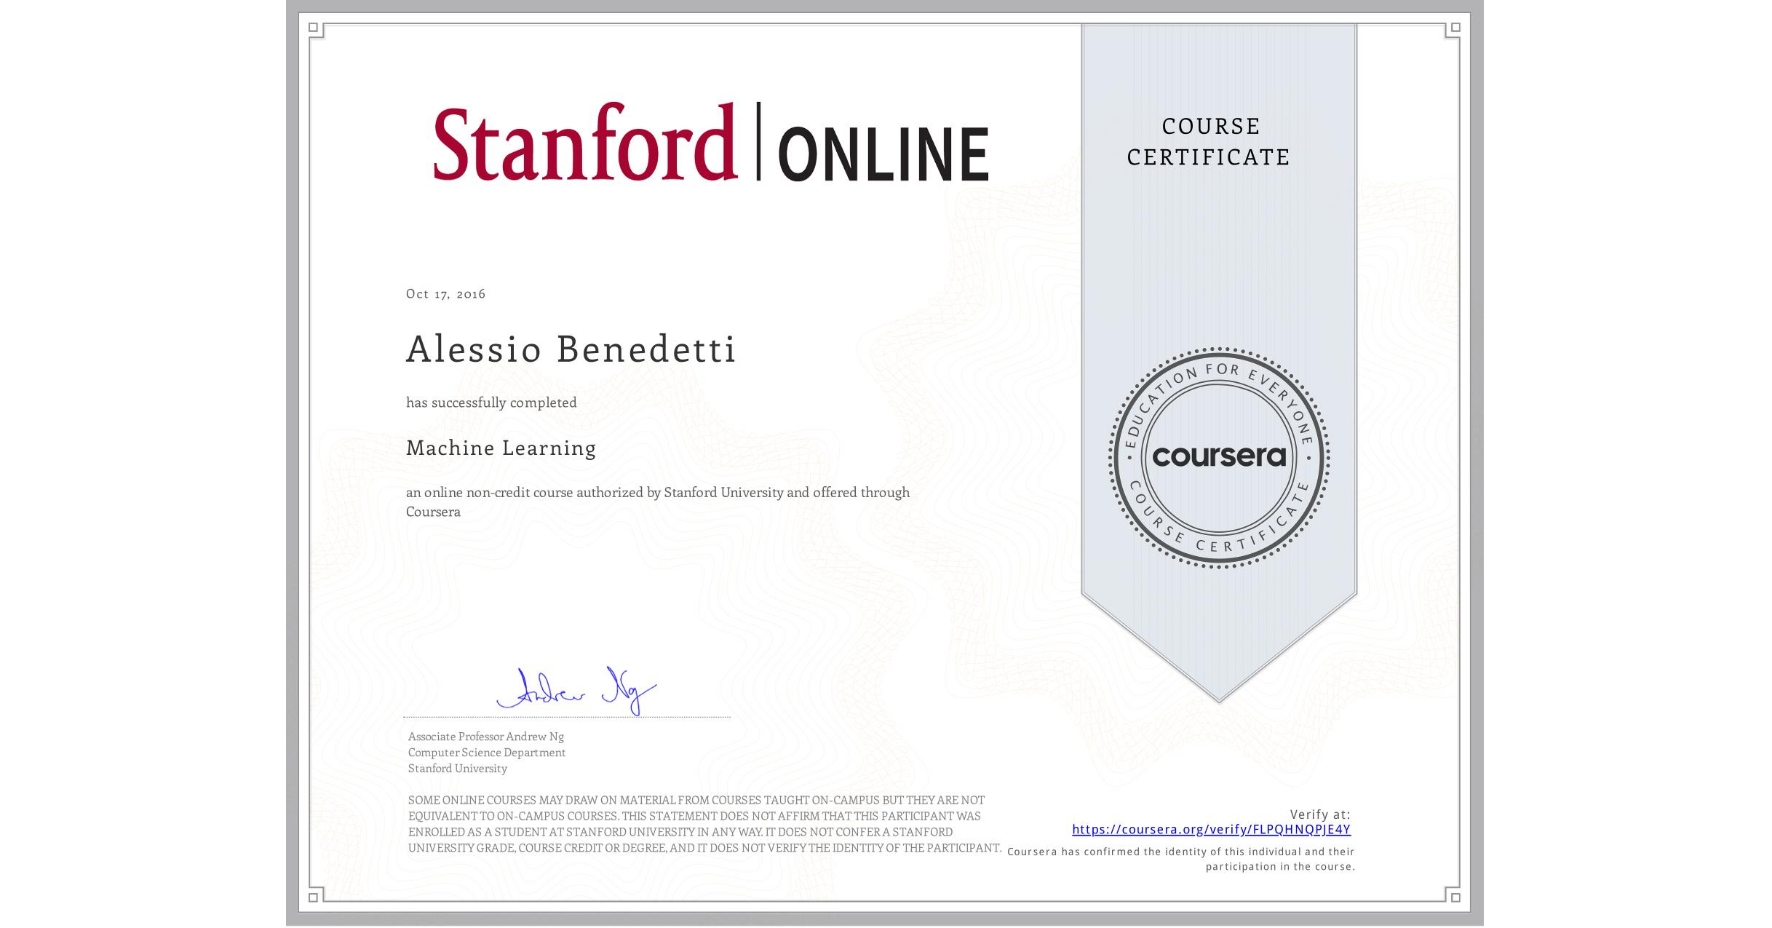 View certificate for Alessio Benedetti, Machine Learning, an online non-credit course authorized by Stanford University and offered through Coursera